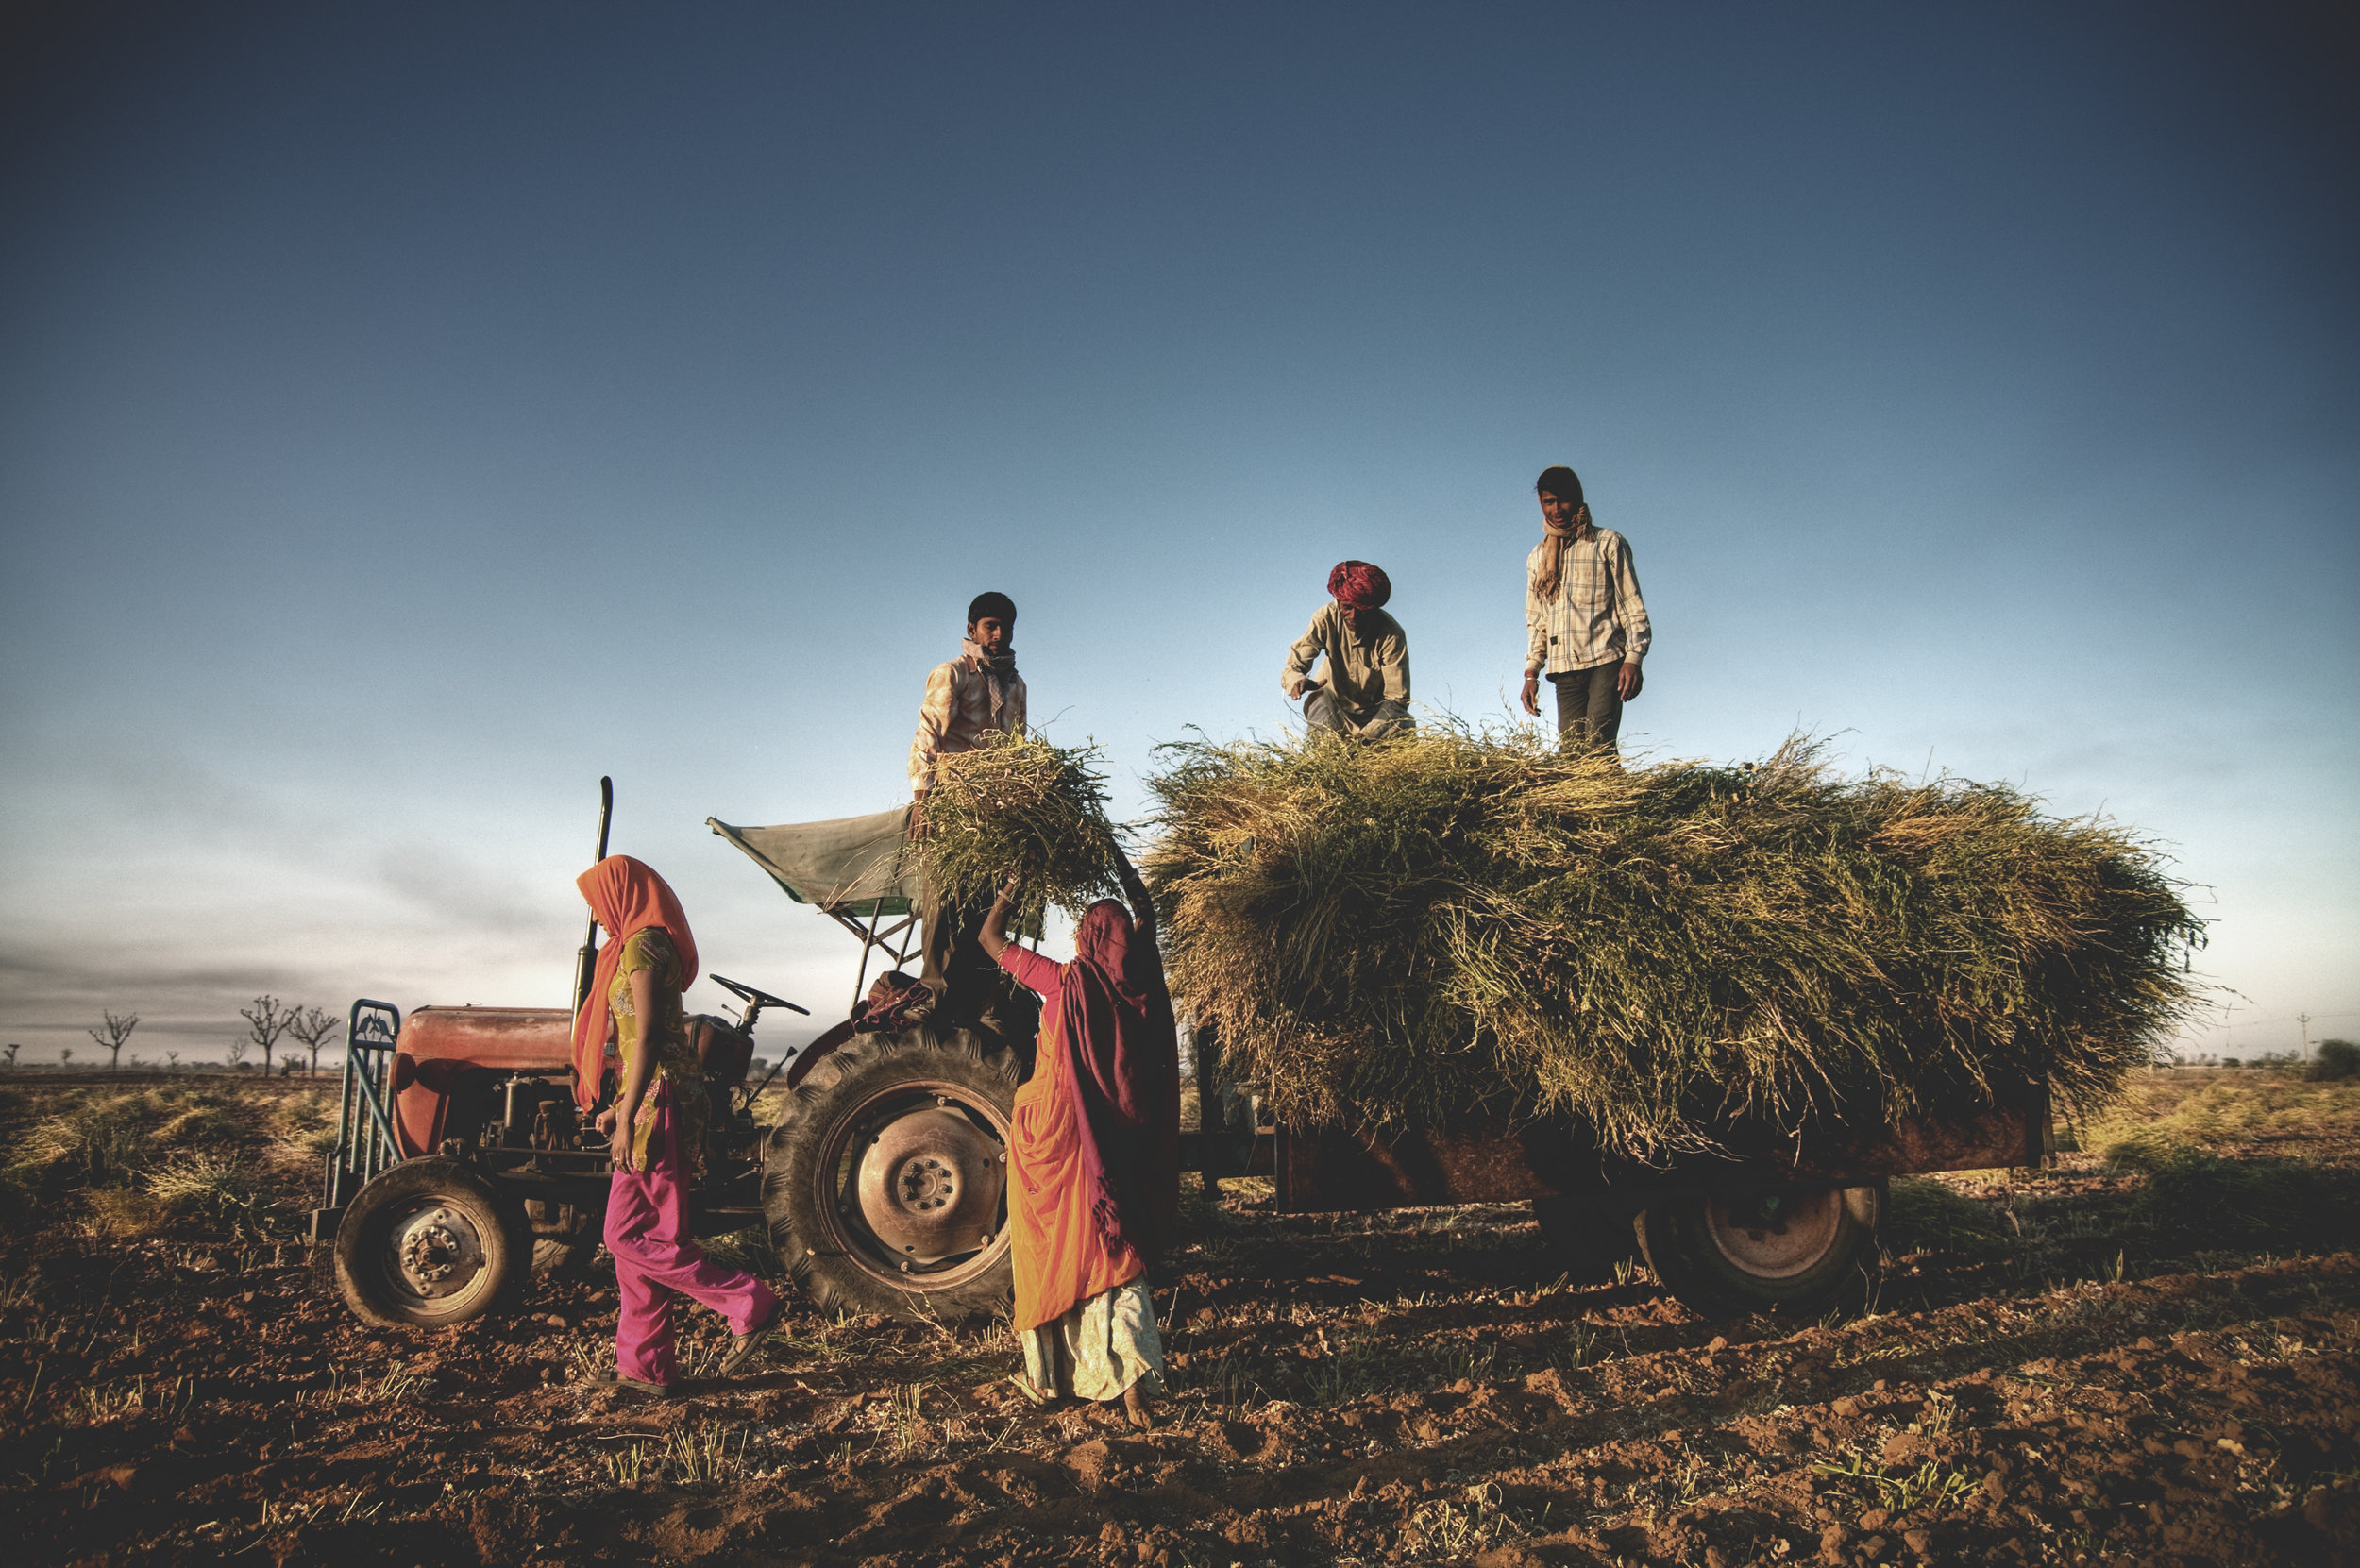 india-family-faeming-harvesting-crops-harvesting-P9MUZNB.jpg